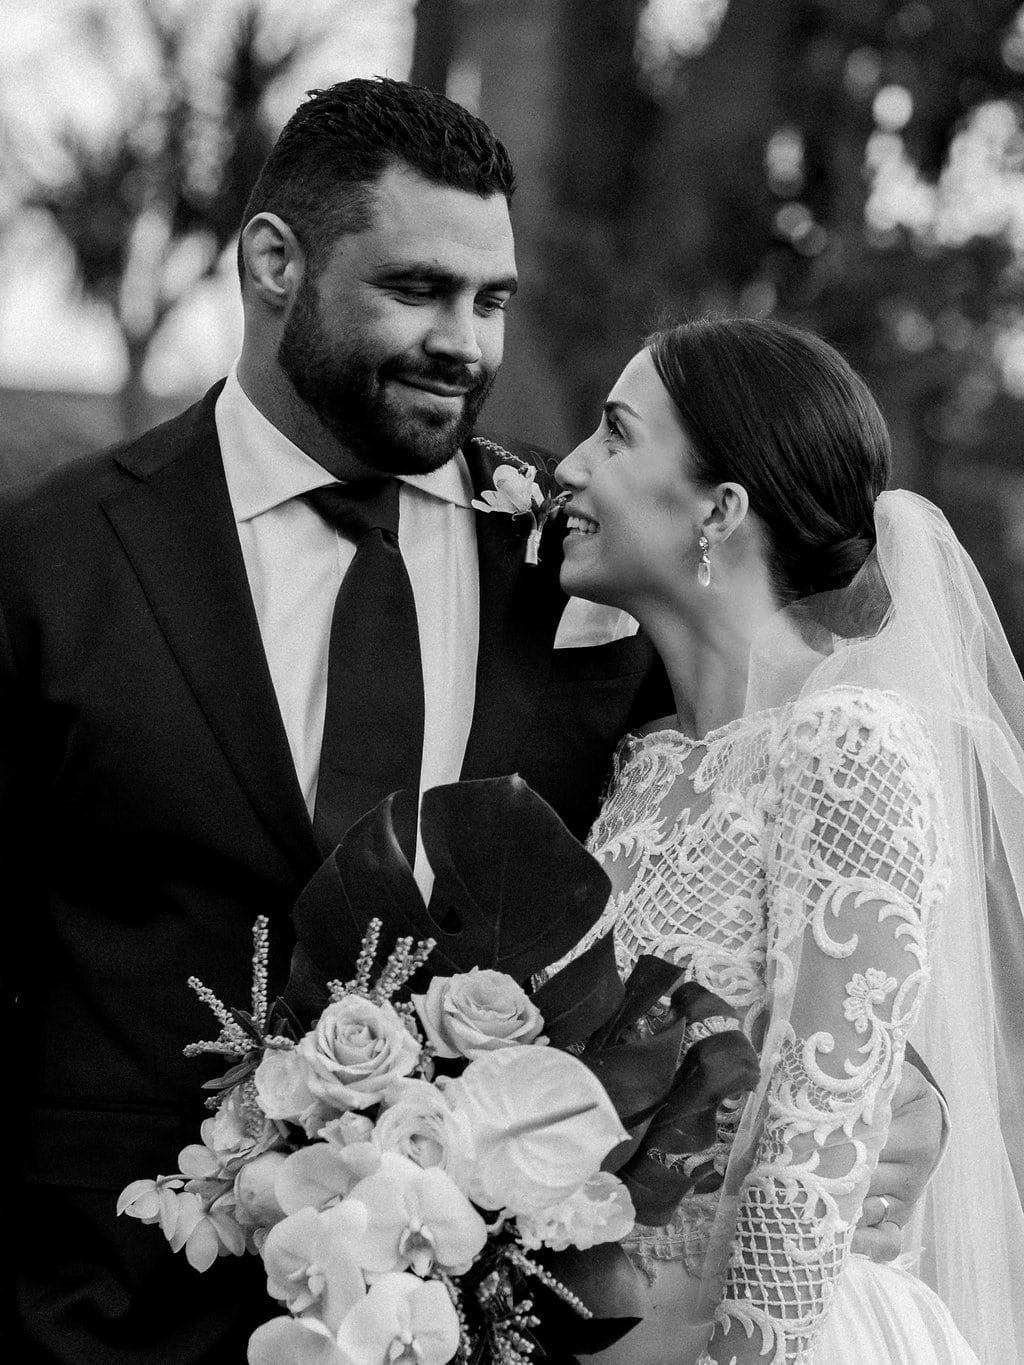 Real Weddings | Vinka Design | Real Brides Wearing Vinka Gowns | Olivia and Ben close up black and white portrait